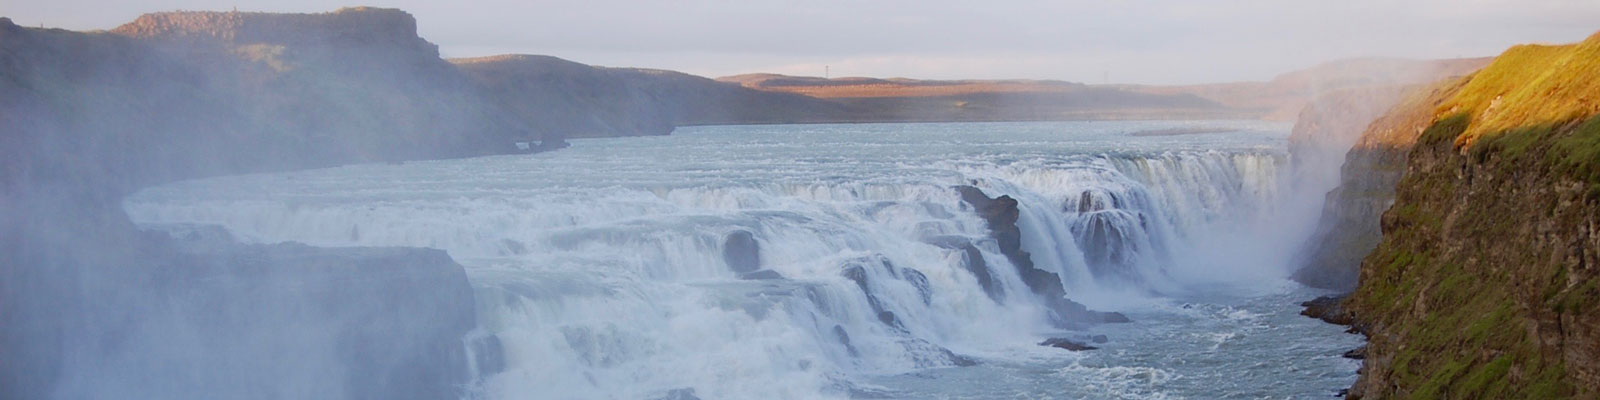 Iceland-Golden-Circle-Gullfoss-Waterfall-1600x400